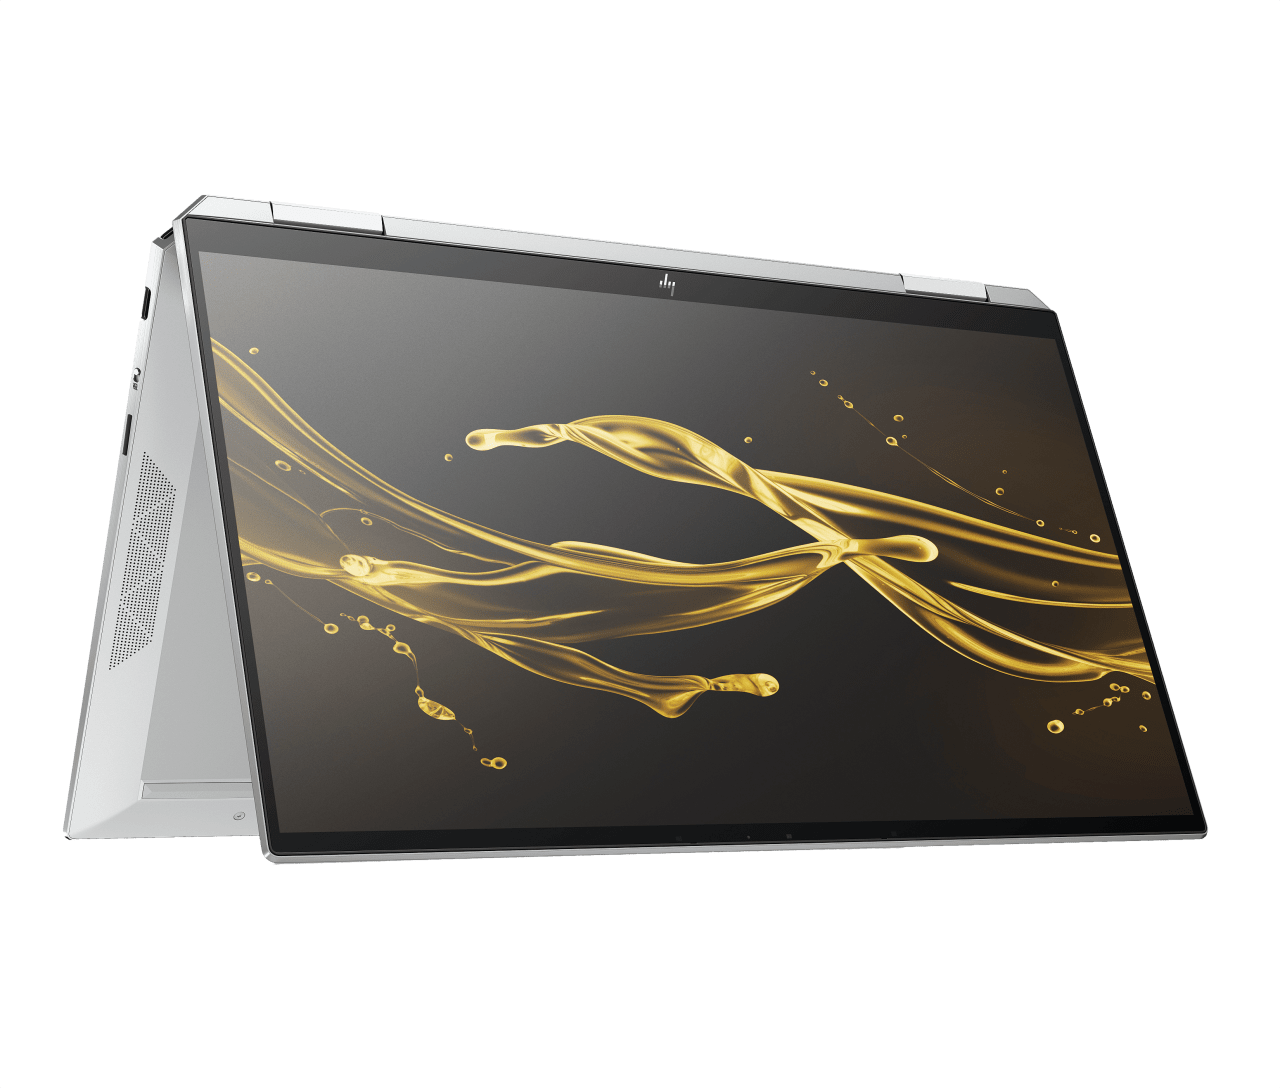 Natural Silver HP Spectre x360 13-aw0030ng 2in1 - Intel® Core™ i7-1065G7 - 16GB - 1TB PCIe - Intel® Iris® Plus Graphics.1